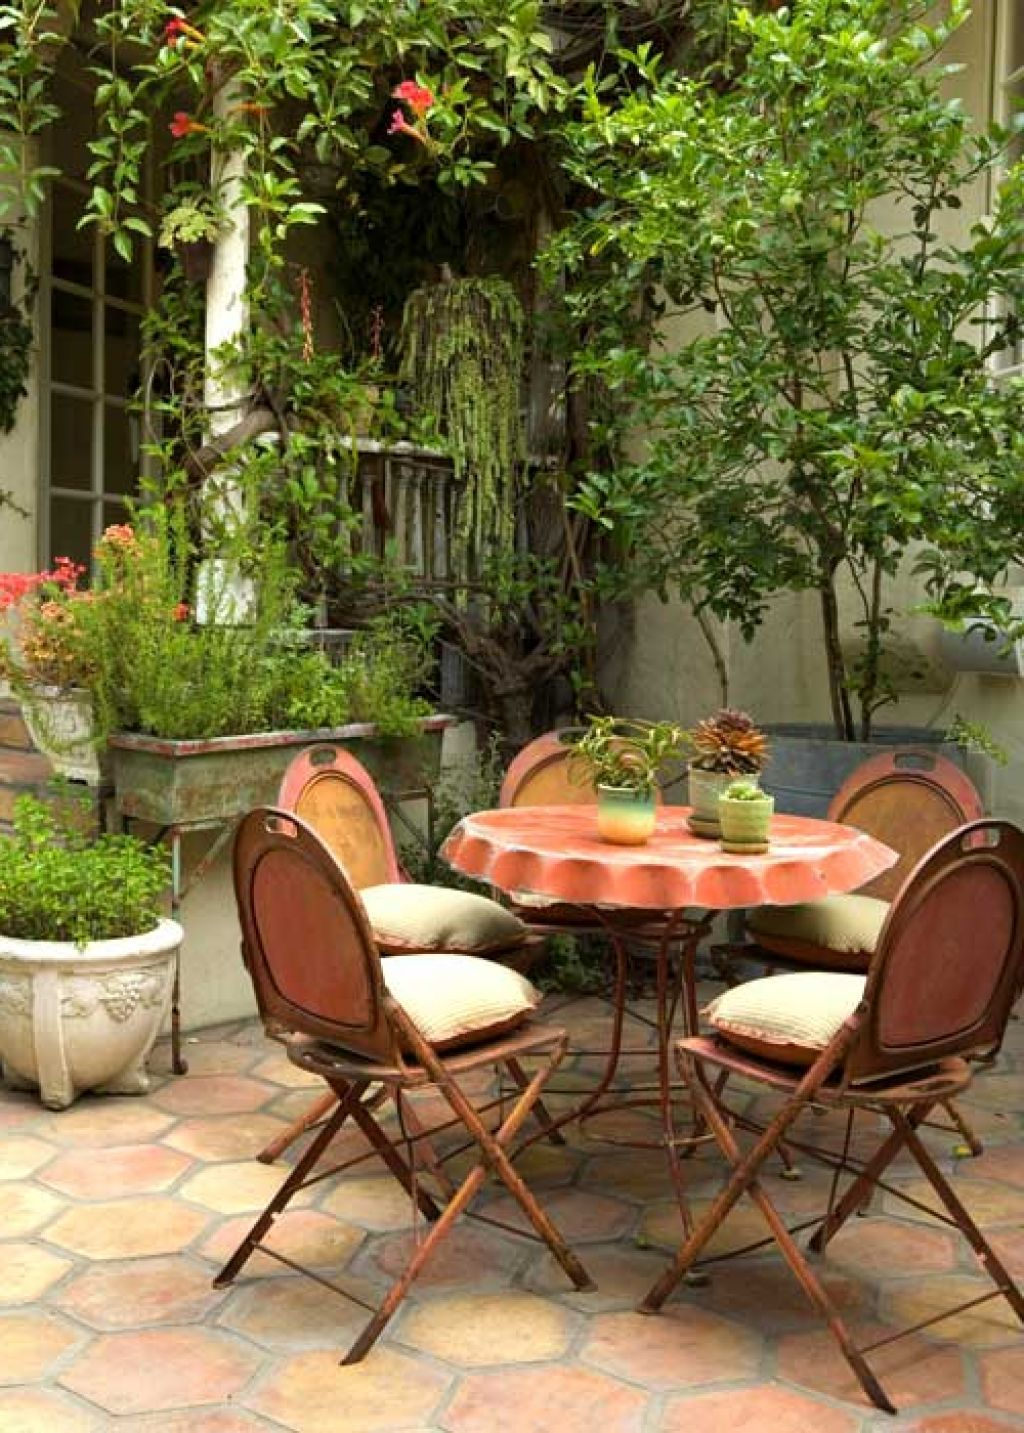 25 Great Ideas For Creating A Unique Outdoor Dining Outdoor Patio Decor Outdoor Eating Spaces Outdoor Dining Area